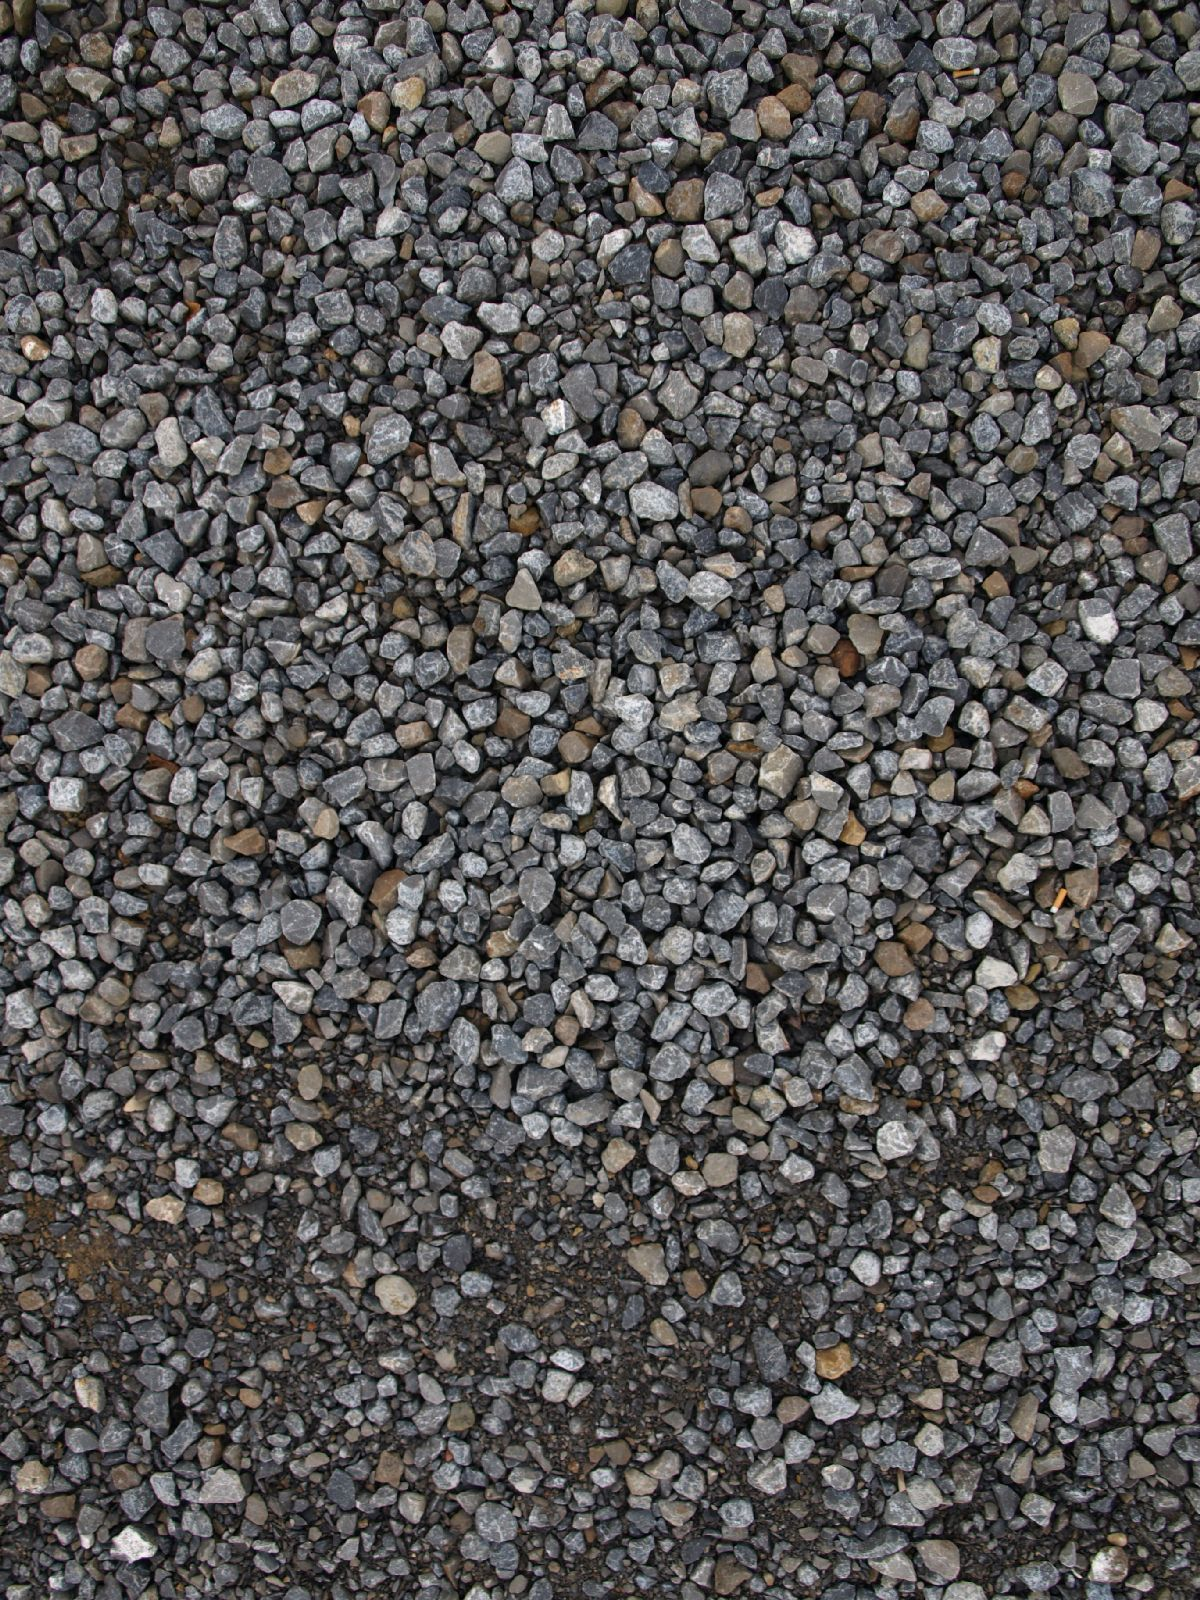 Ground-Nature_Texture_A_P5022121